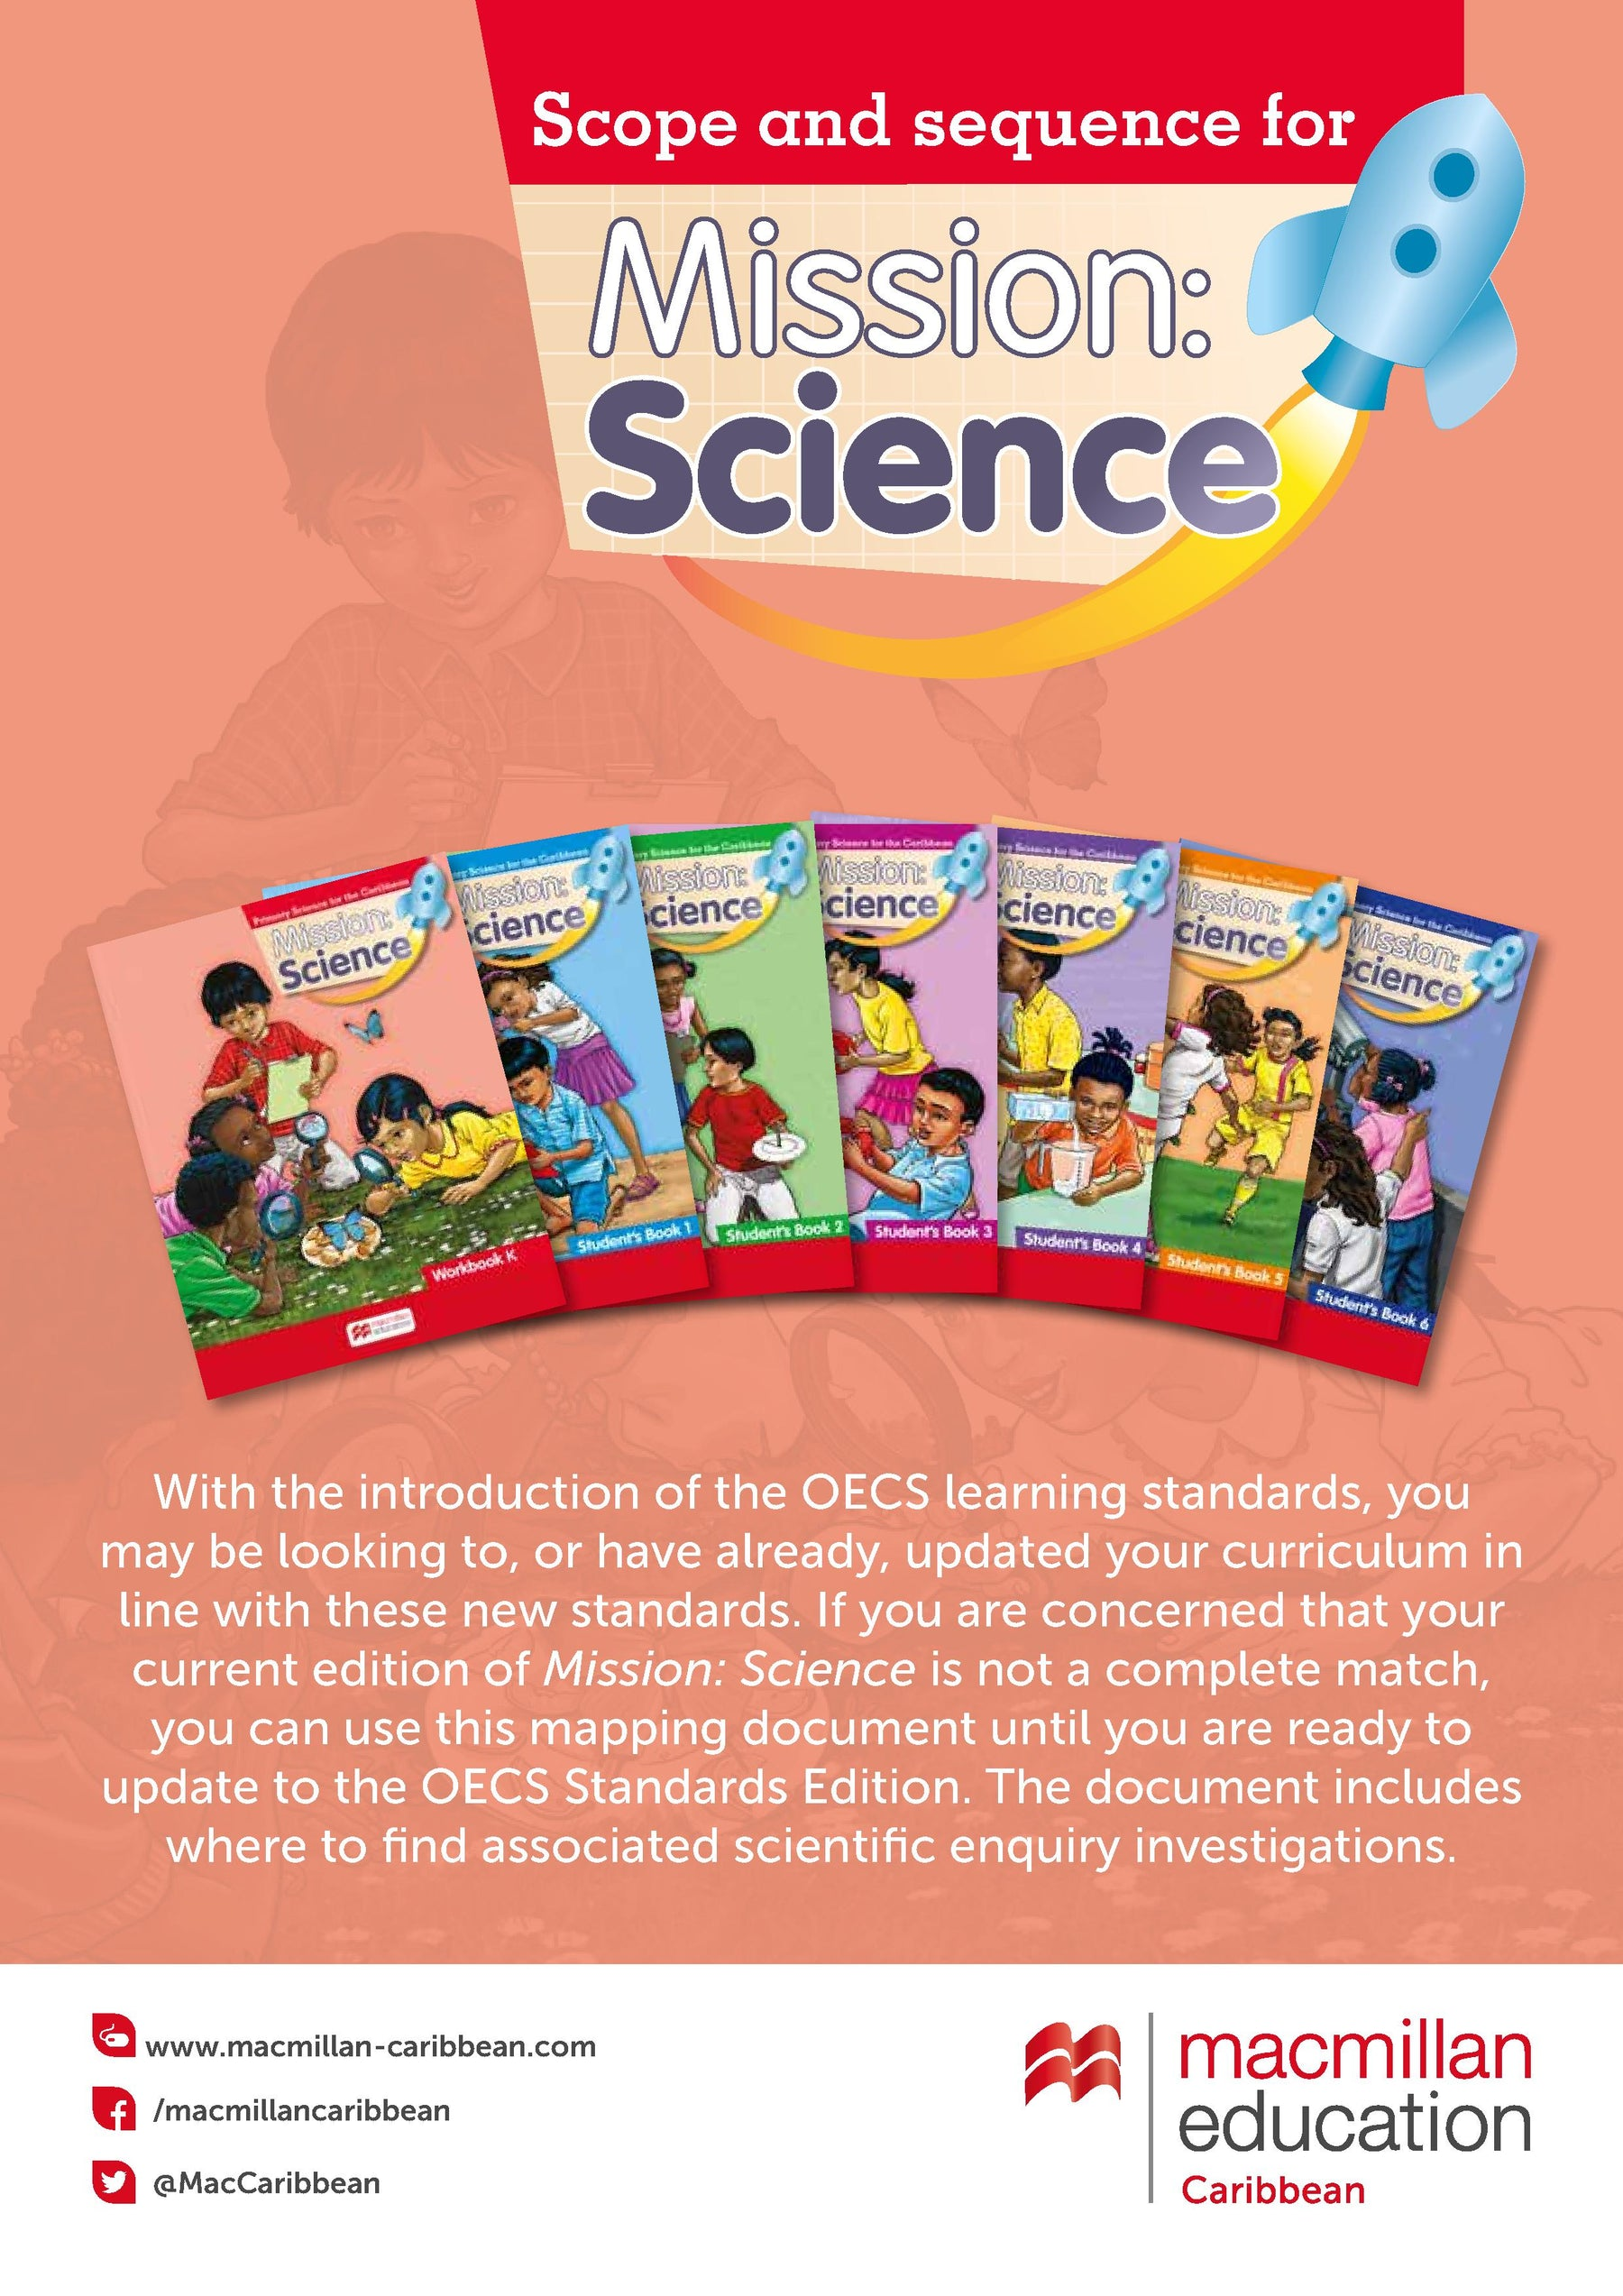 MISSION: SCIENCE Mapping document for the OECS standard